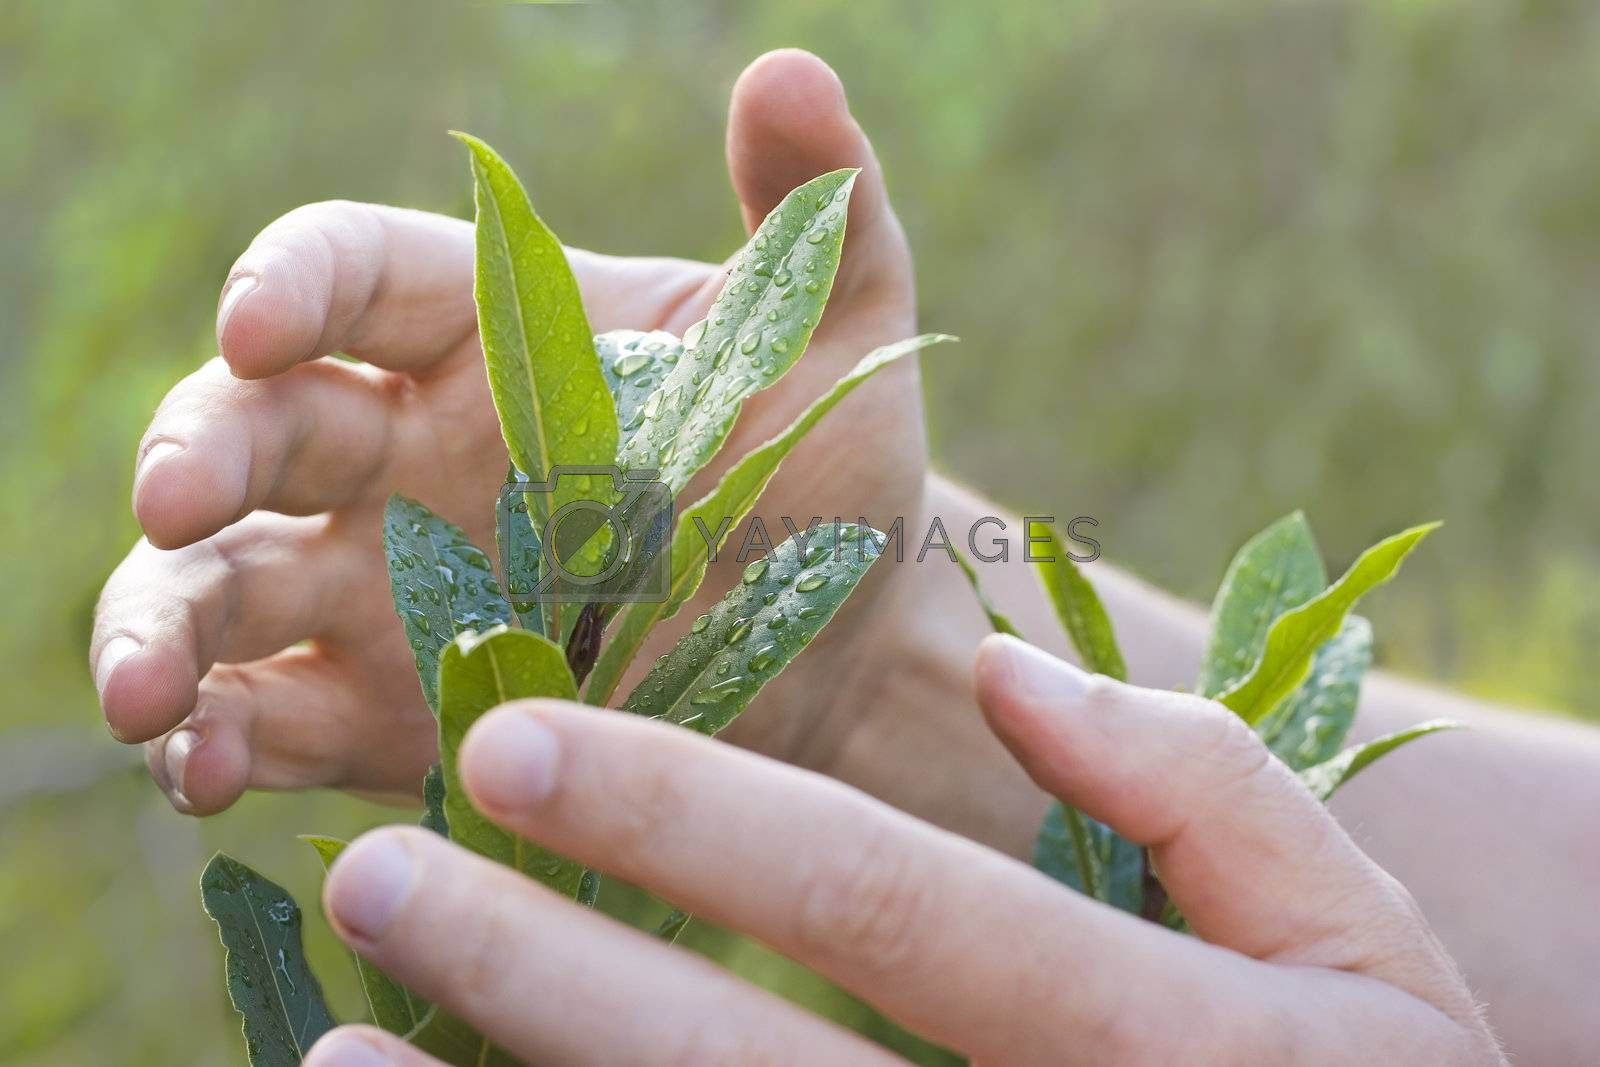 Male hands protecting a plant with drops of water